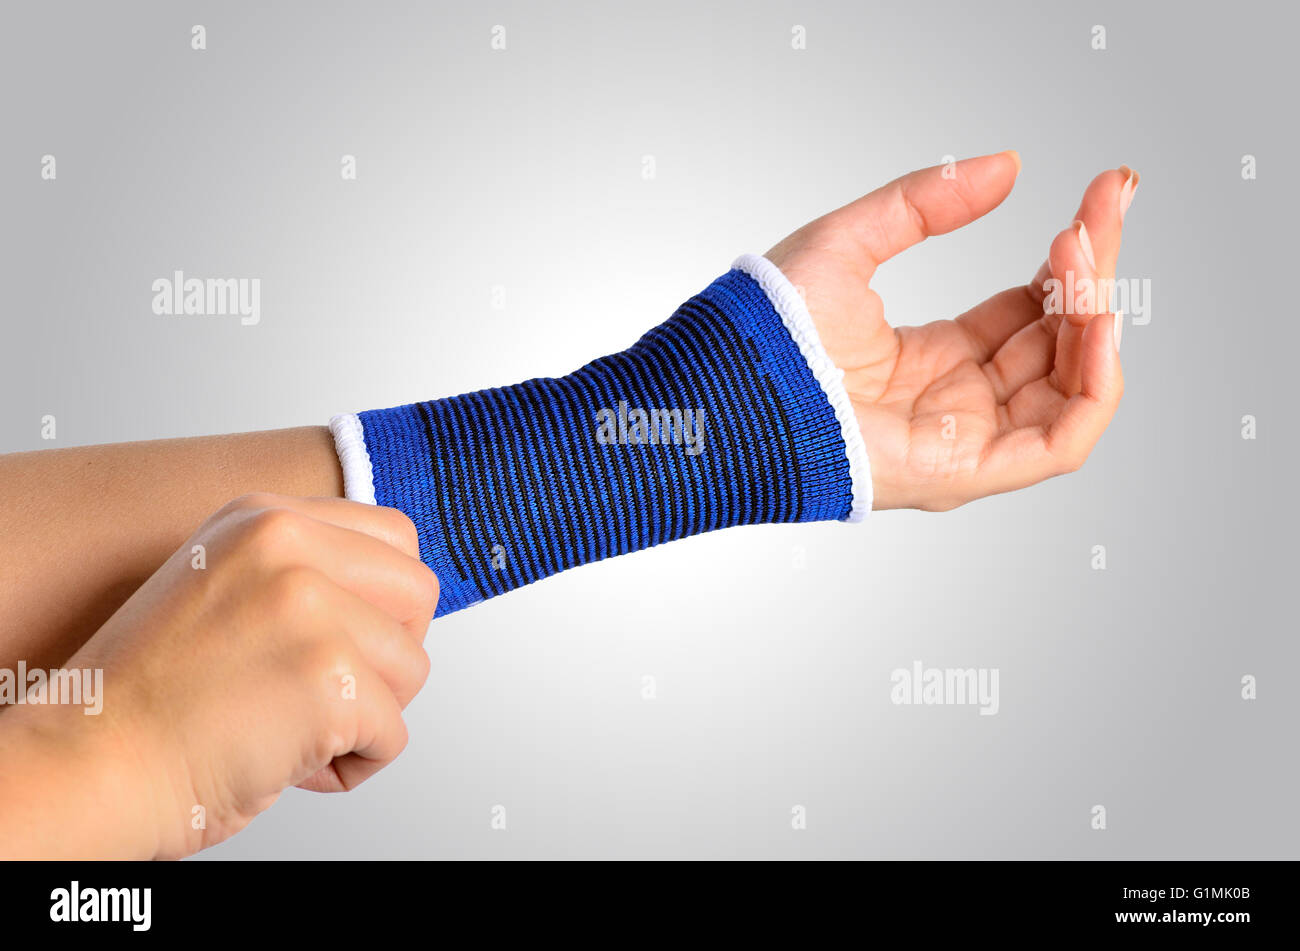 hand with a orthopedic wrist brace - Stock Image